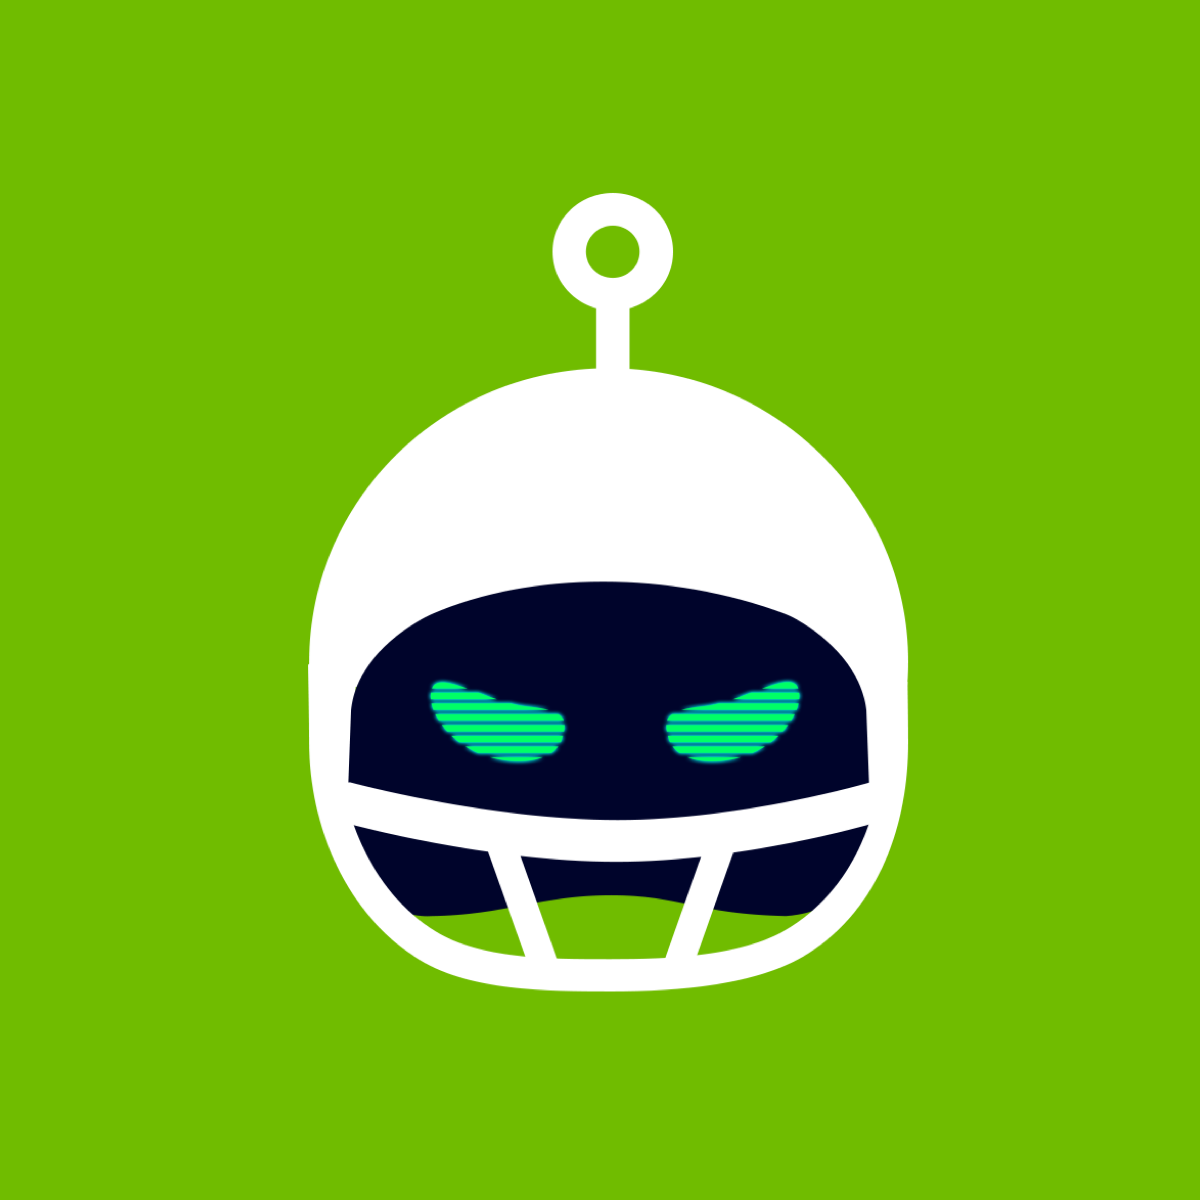 Sleeper Free Fantasy Football Leagues Is Netlist Circuit And Can Several Avira Antivir Download Chip